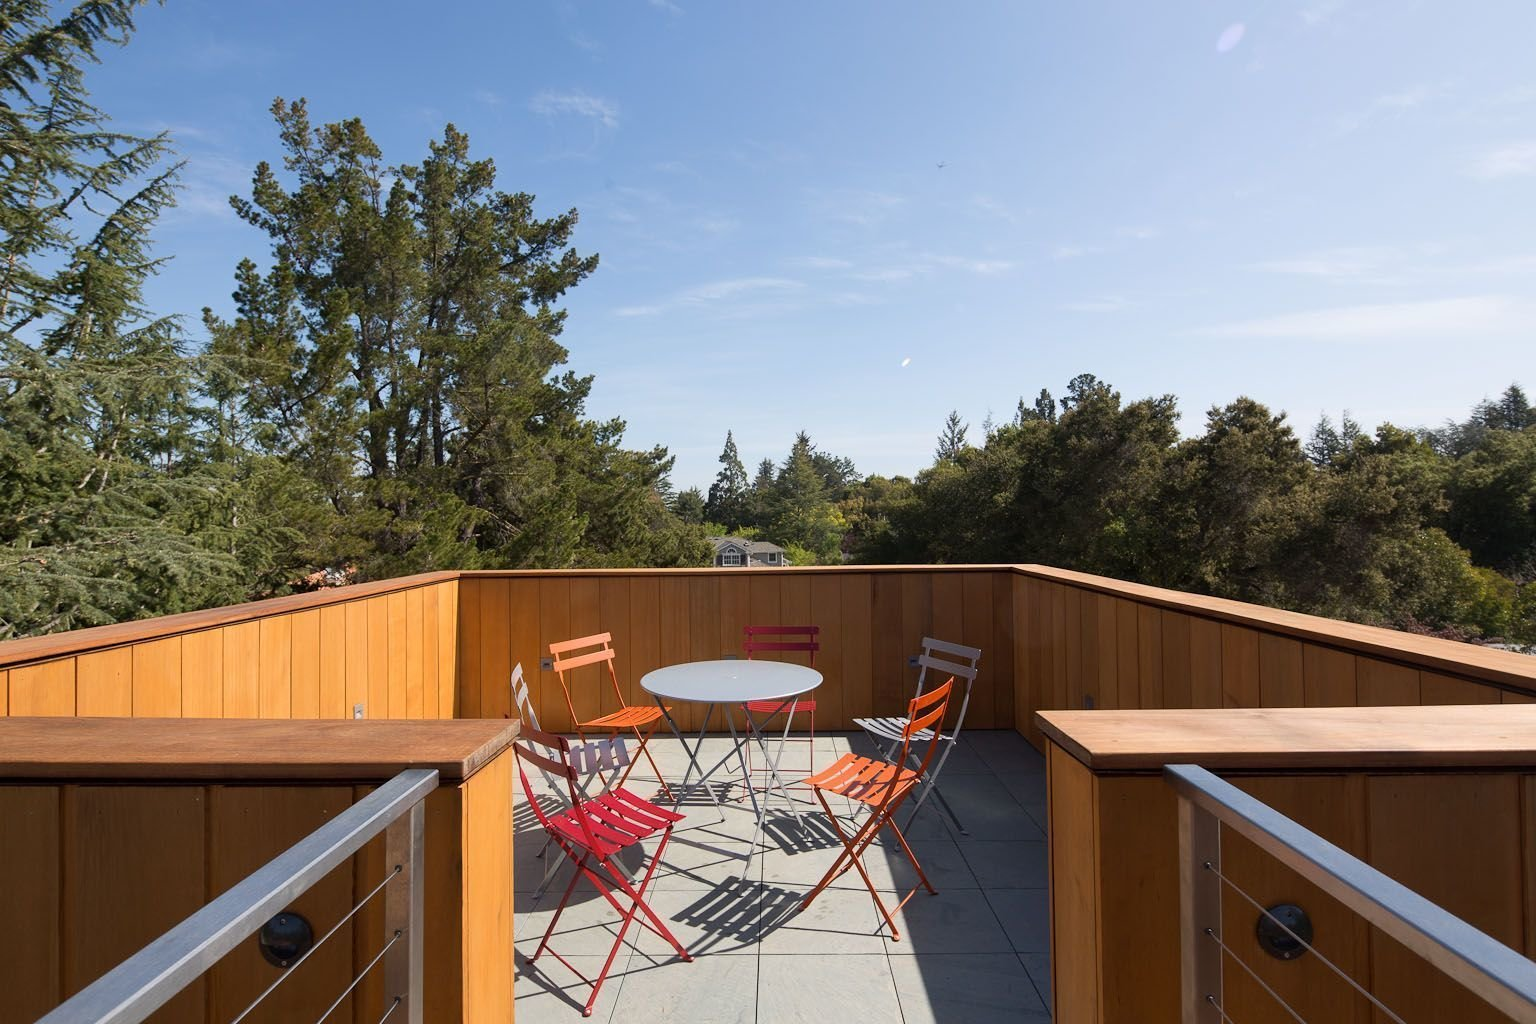 Atop the 30-foot tower, a roof deck emerges through the trees, providing a unique vantage point of the structure below and the surrounding townscape. Tagged: Outdoor and Rooftop.  Photo 8 of 8 in A Sustainable Home in Silicon Valley